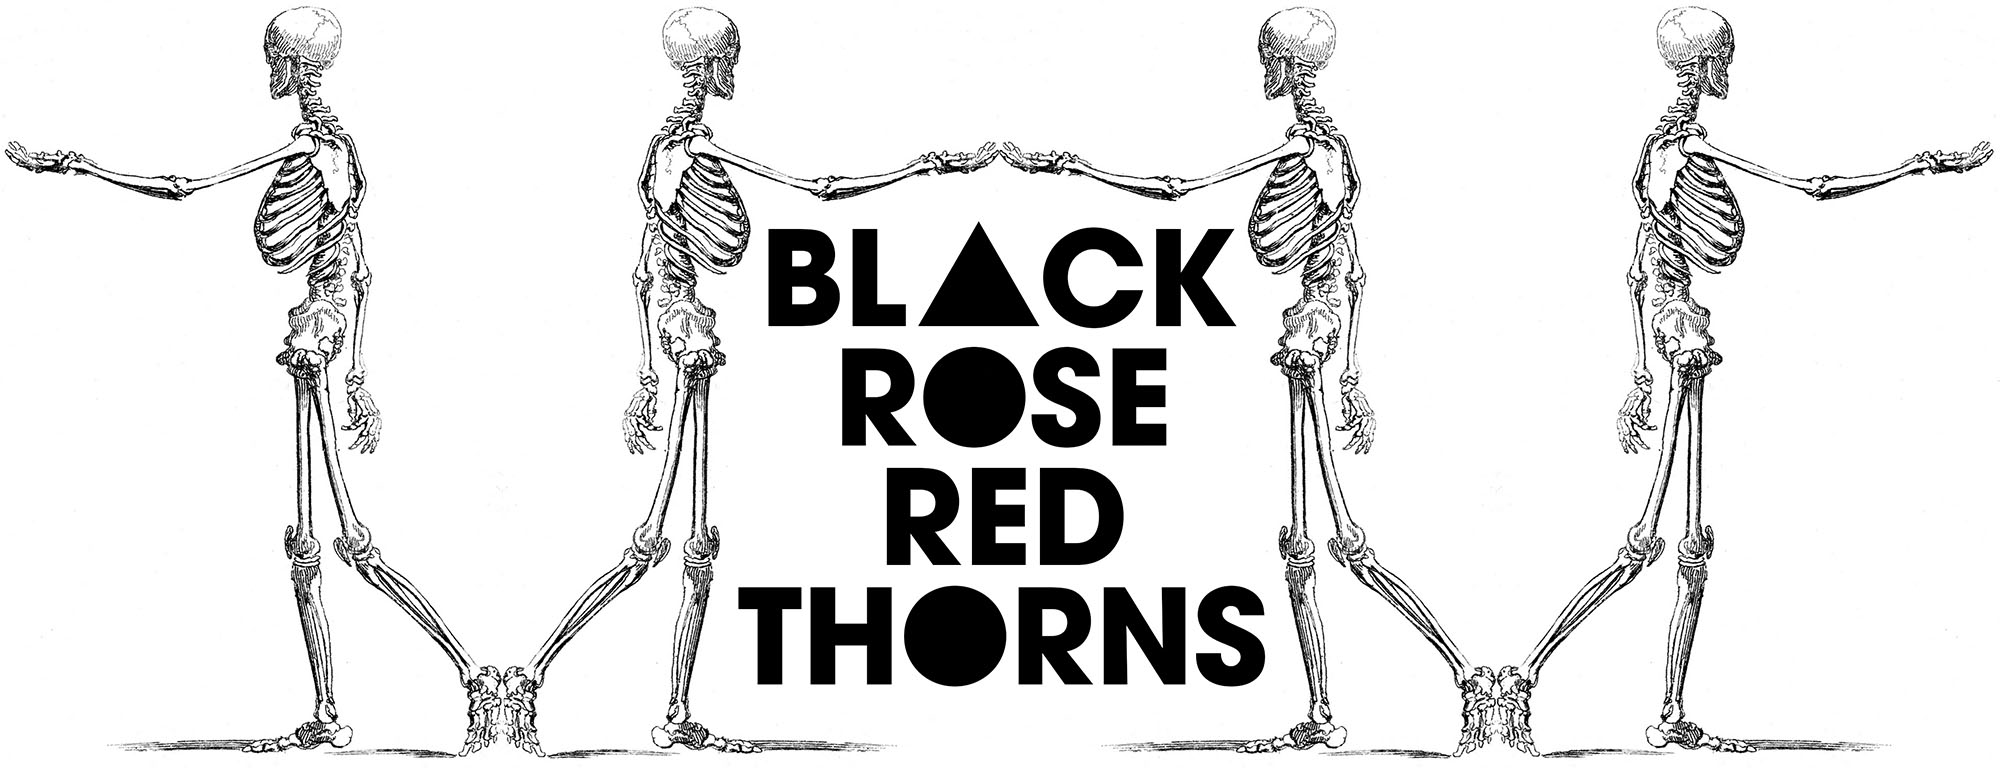 Black Rose Red Thorns Vegan Goth Punk Fashion